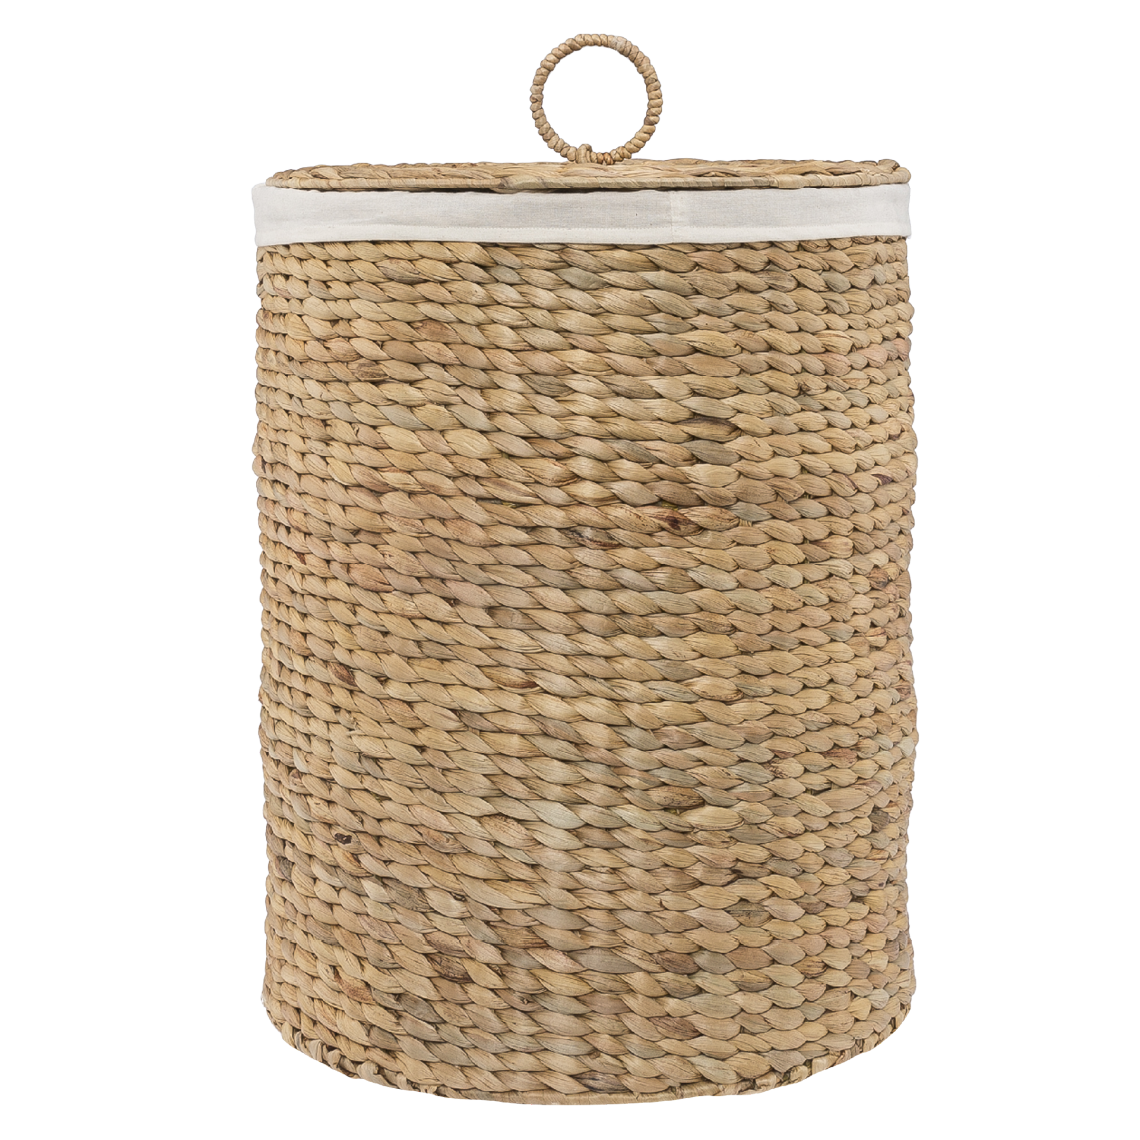 39137 Popular Category - Deep etches_Laundry Hampers.png